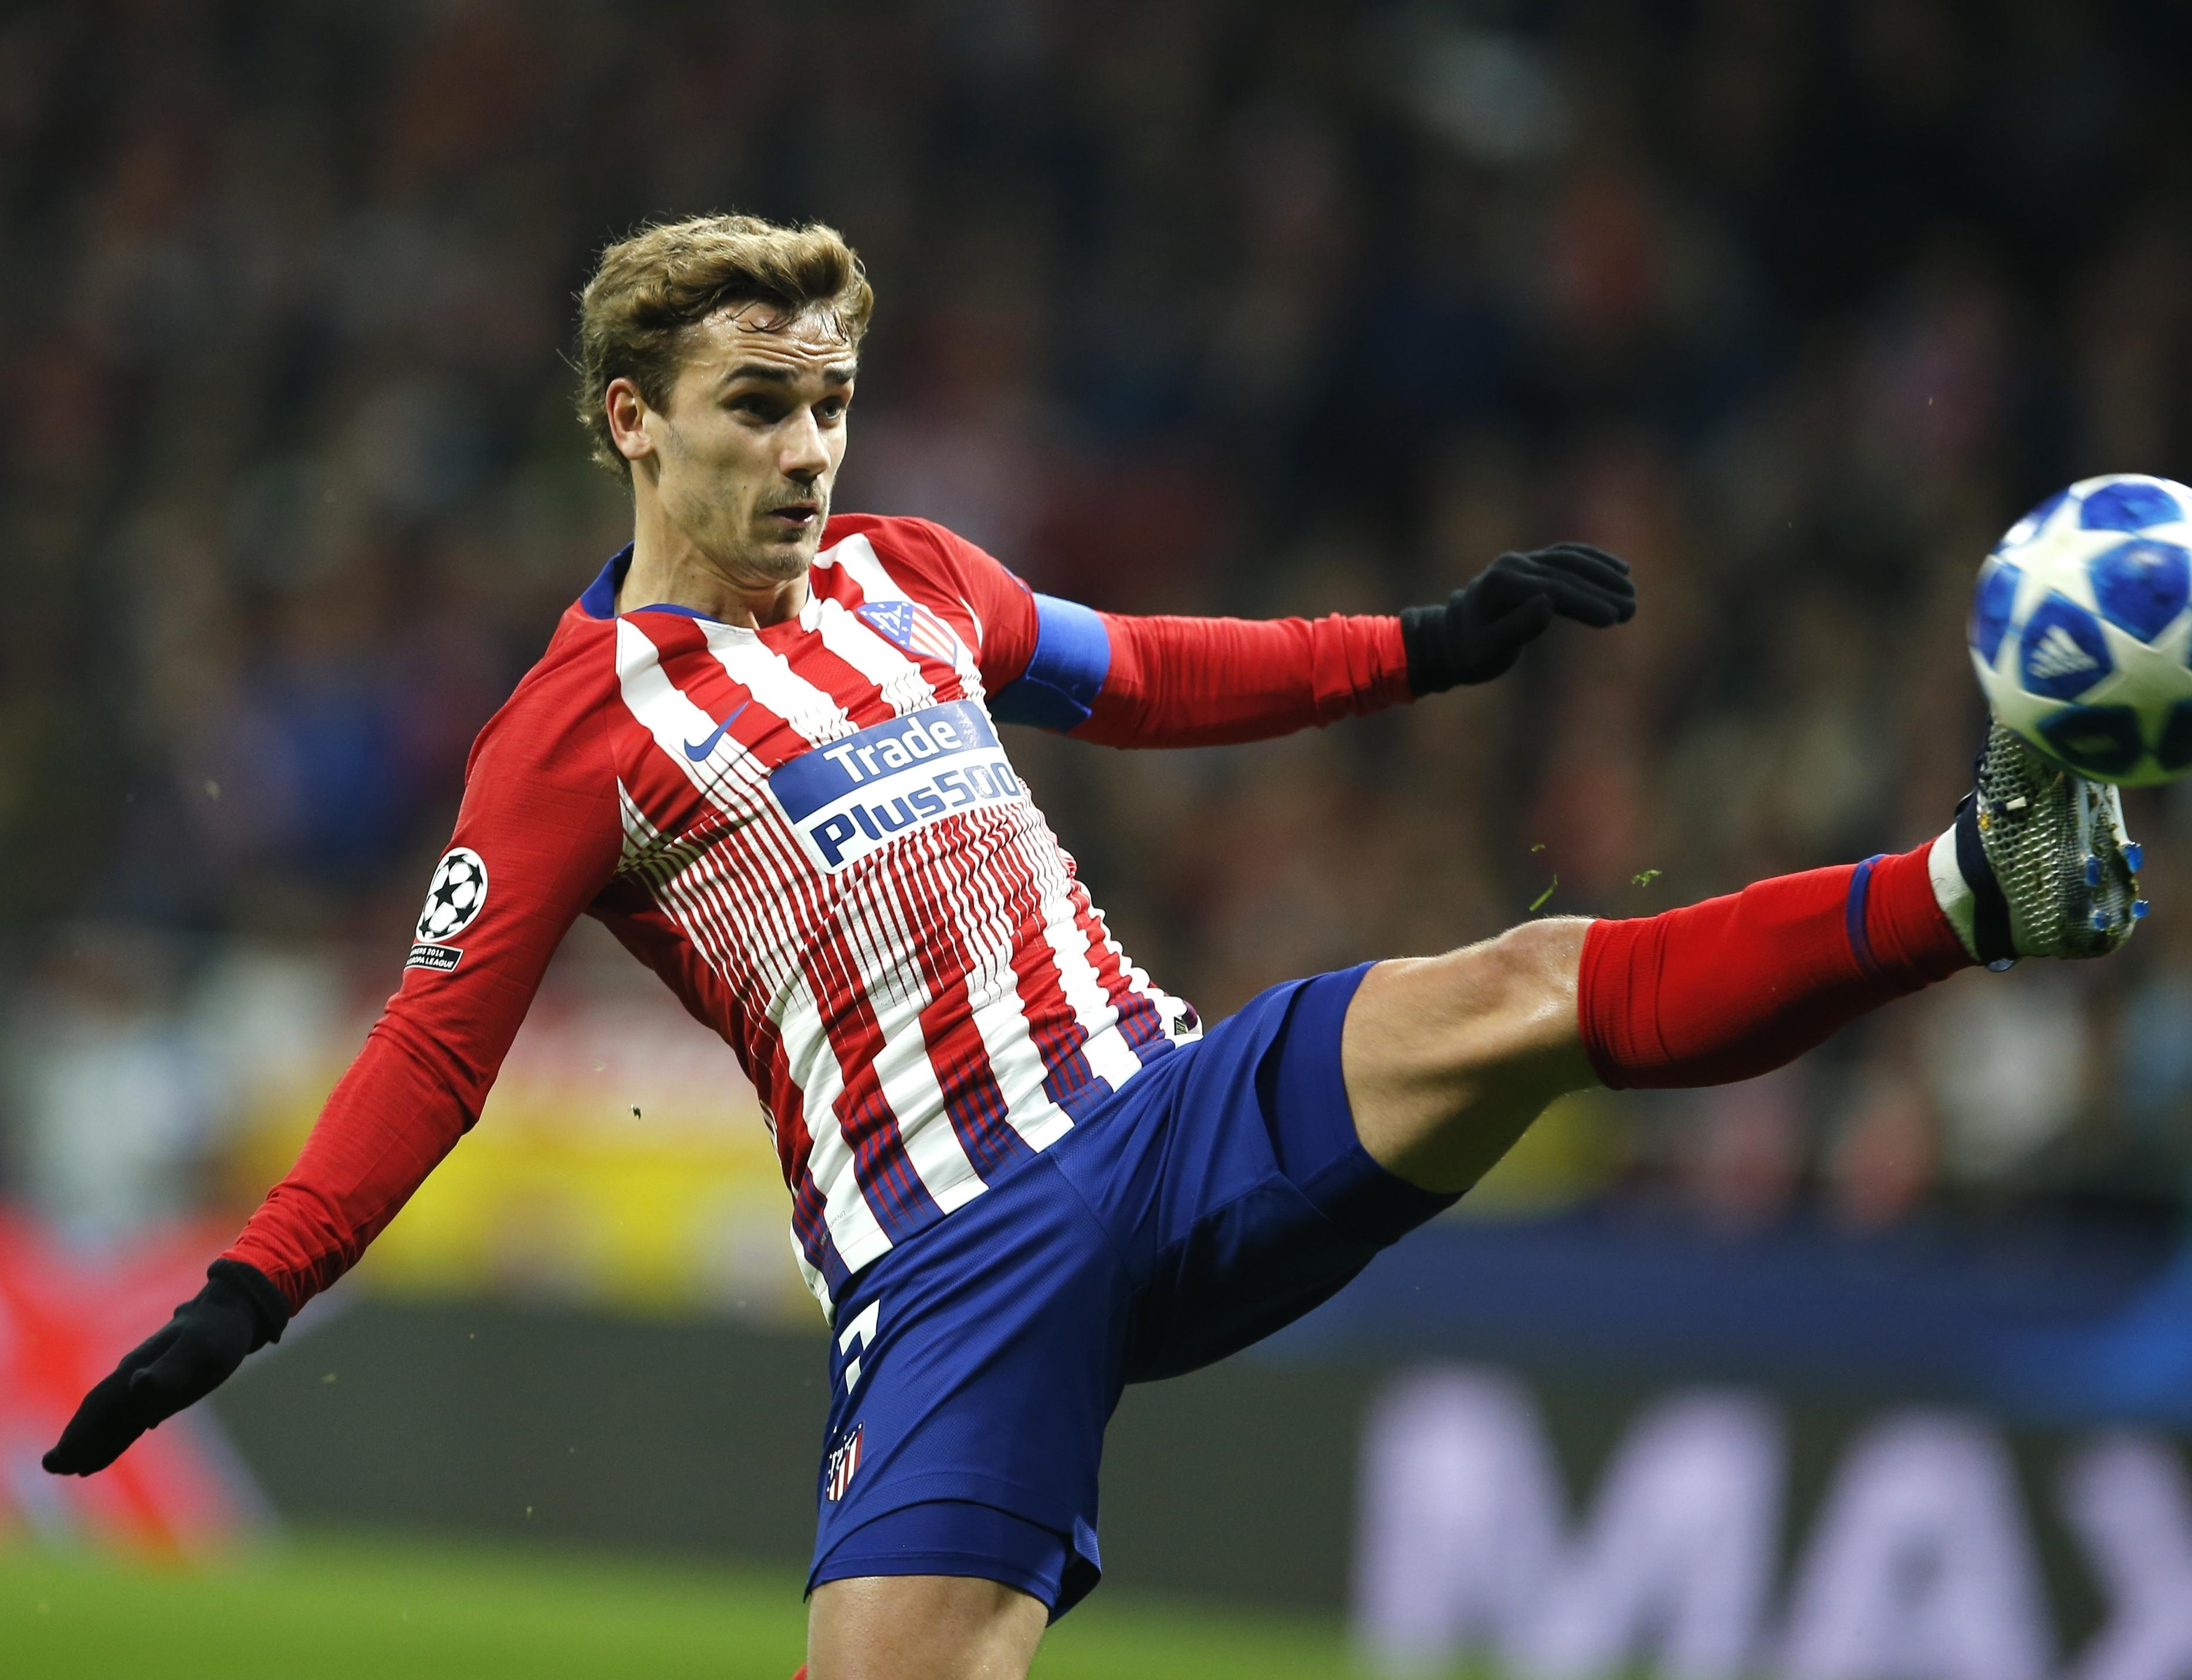 cd19f8a7ed0 Atletico Antoine Griezmann controls the ball during the Group A Champions  League soccer match between Atletico